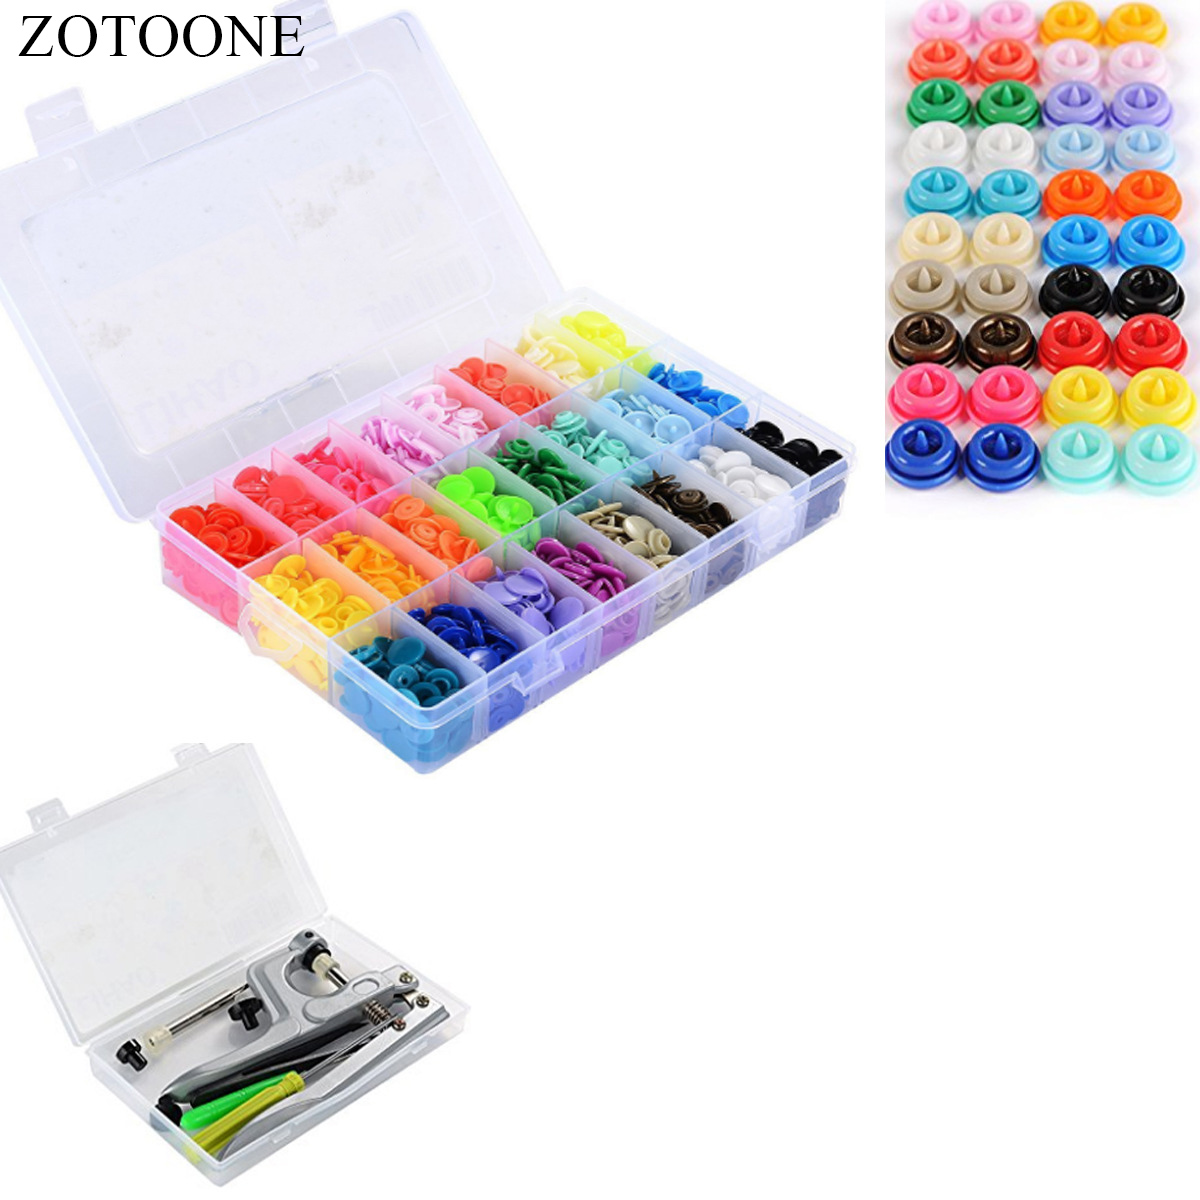 ZOTOONE Sewing Tools 360PCS Boxed Button T5 Plastic Snap Button And Hand Pressure Pliers Set For Sewing Tools And Accessories E